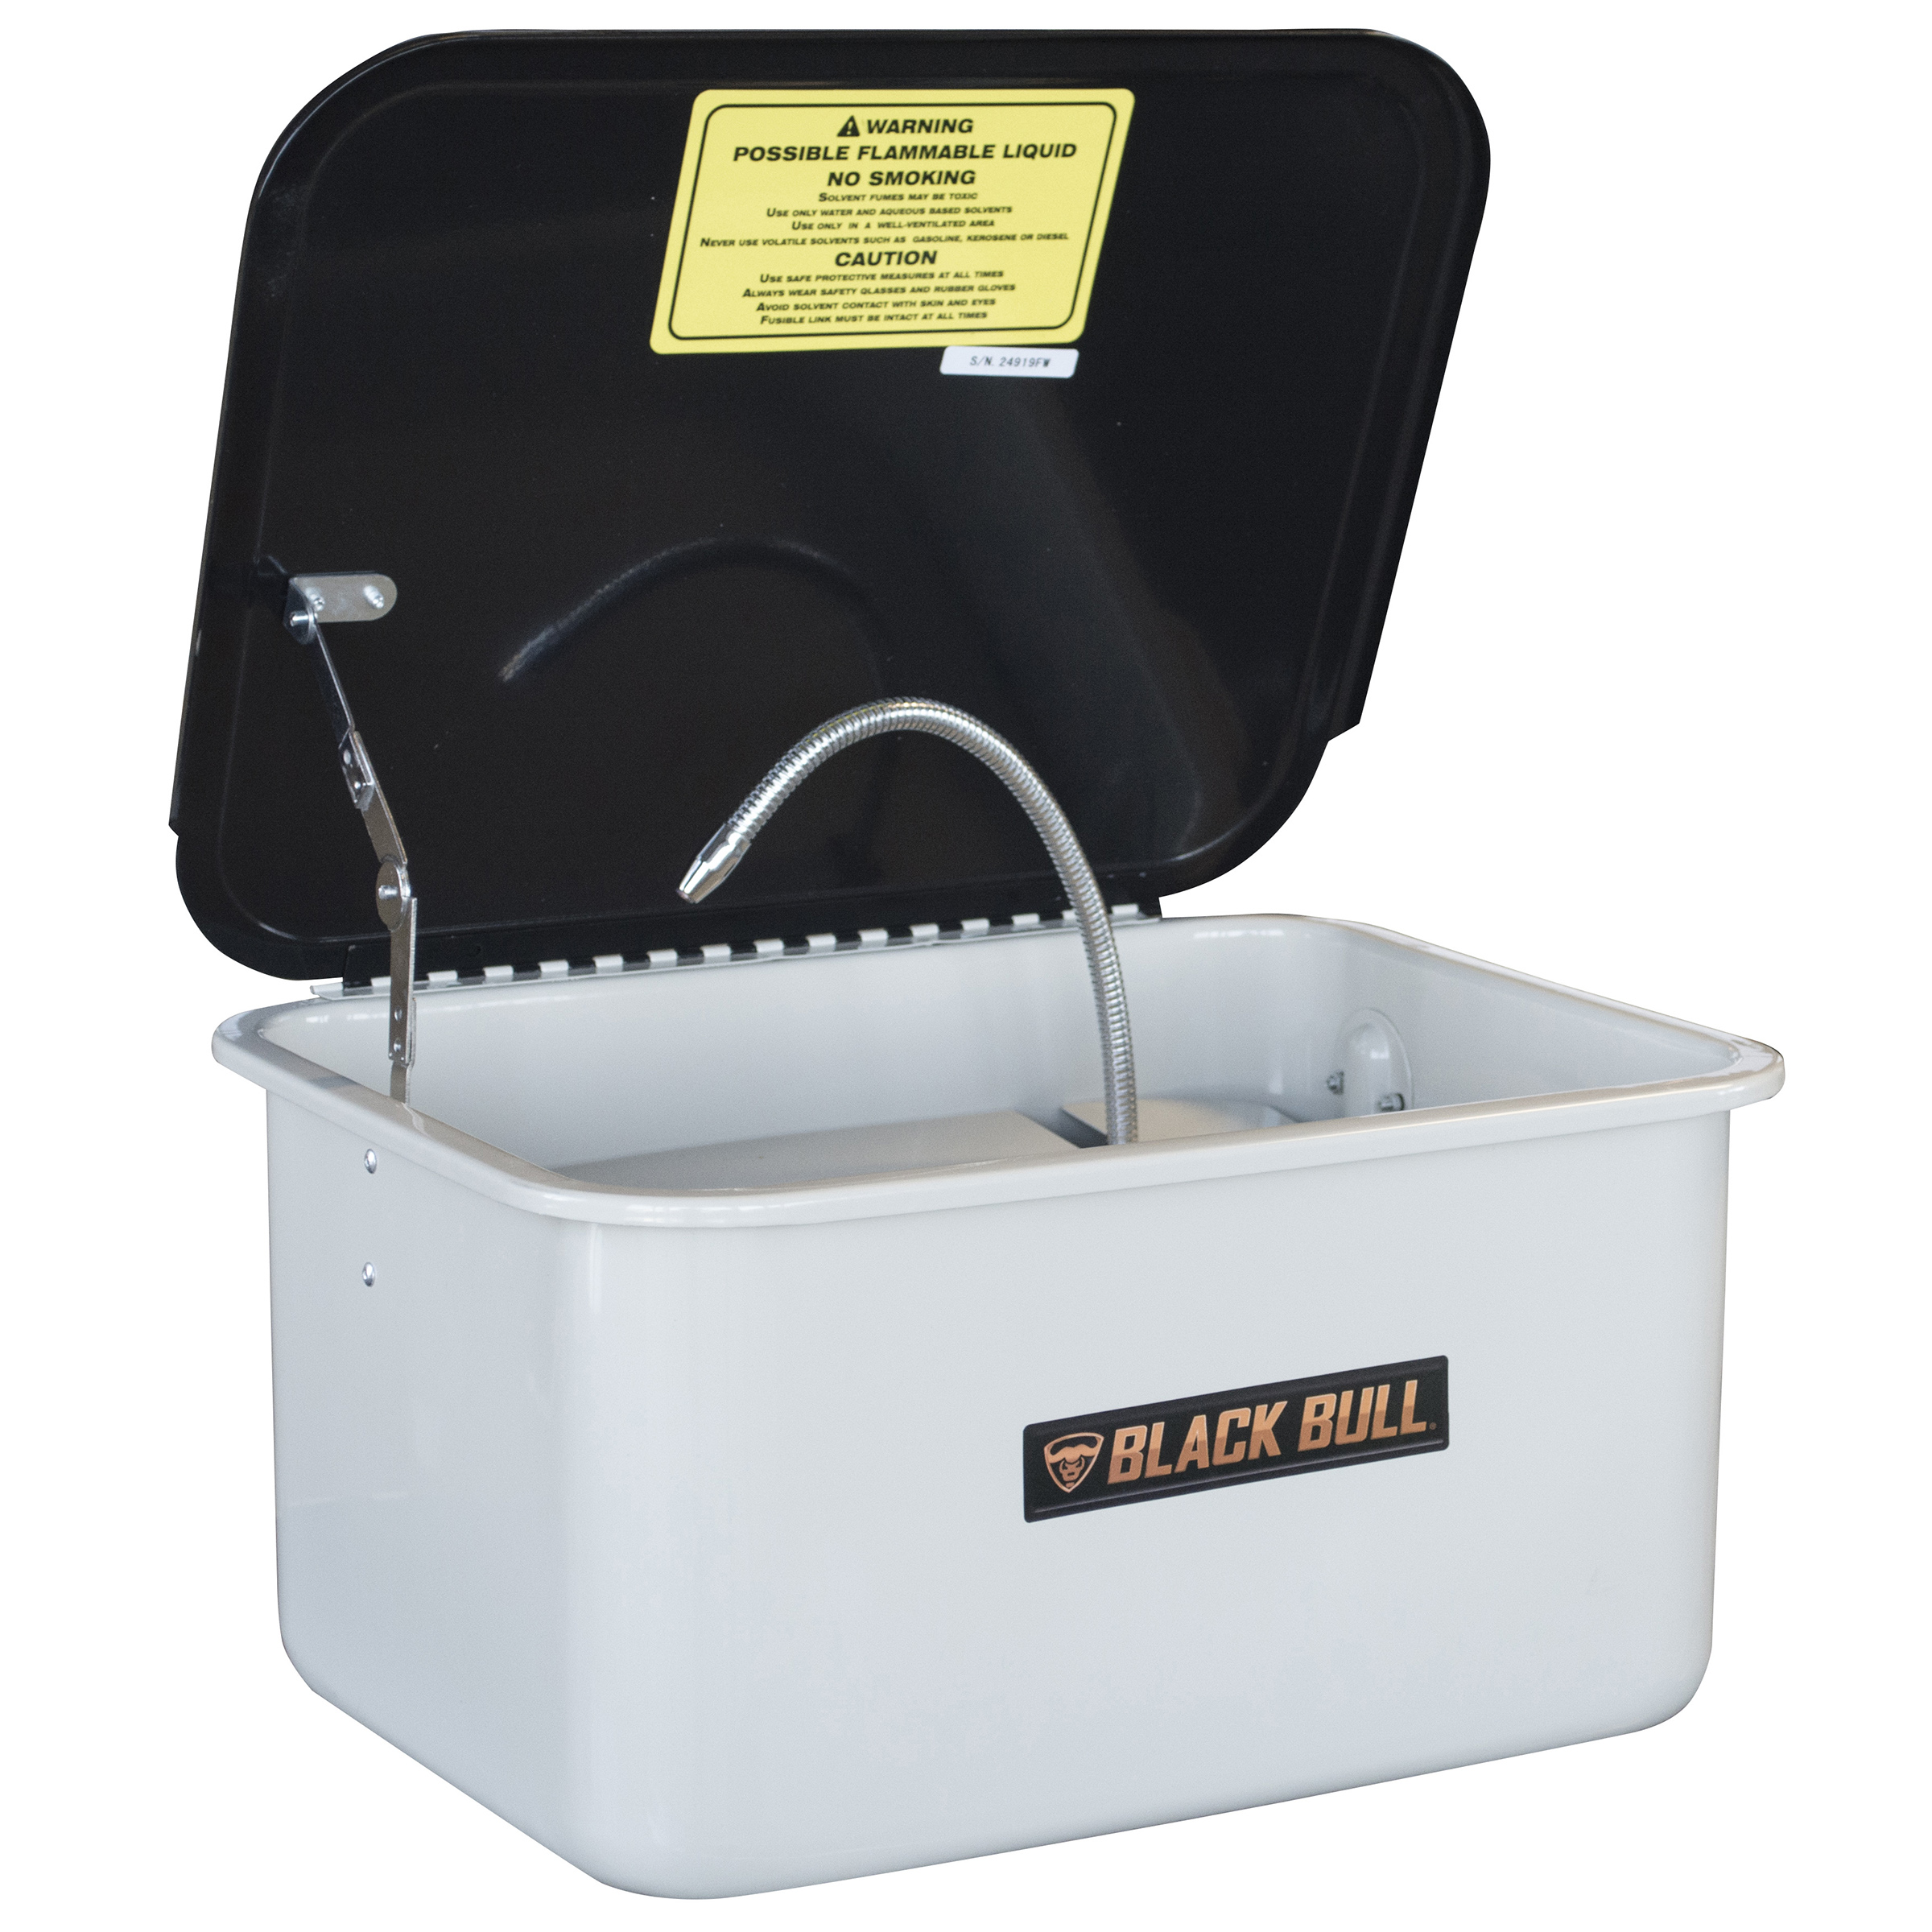 Black Bull 3.5 Gallon Portable Parts Washer